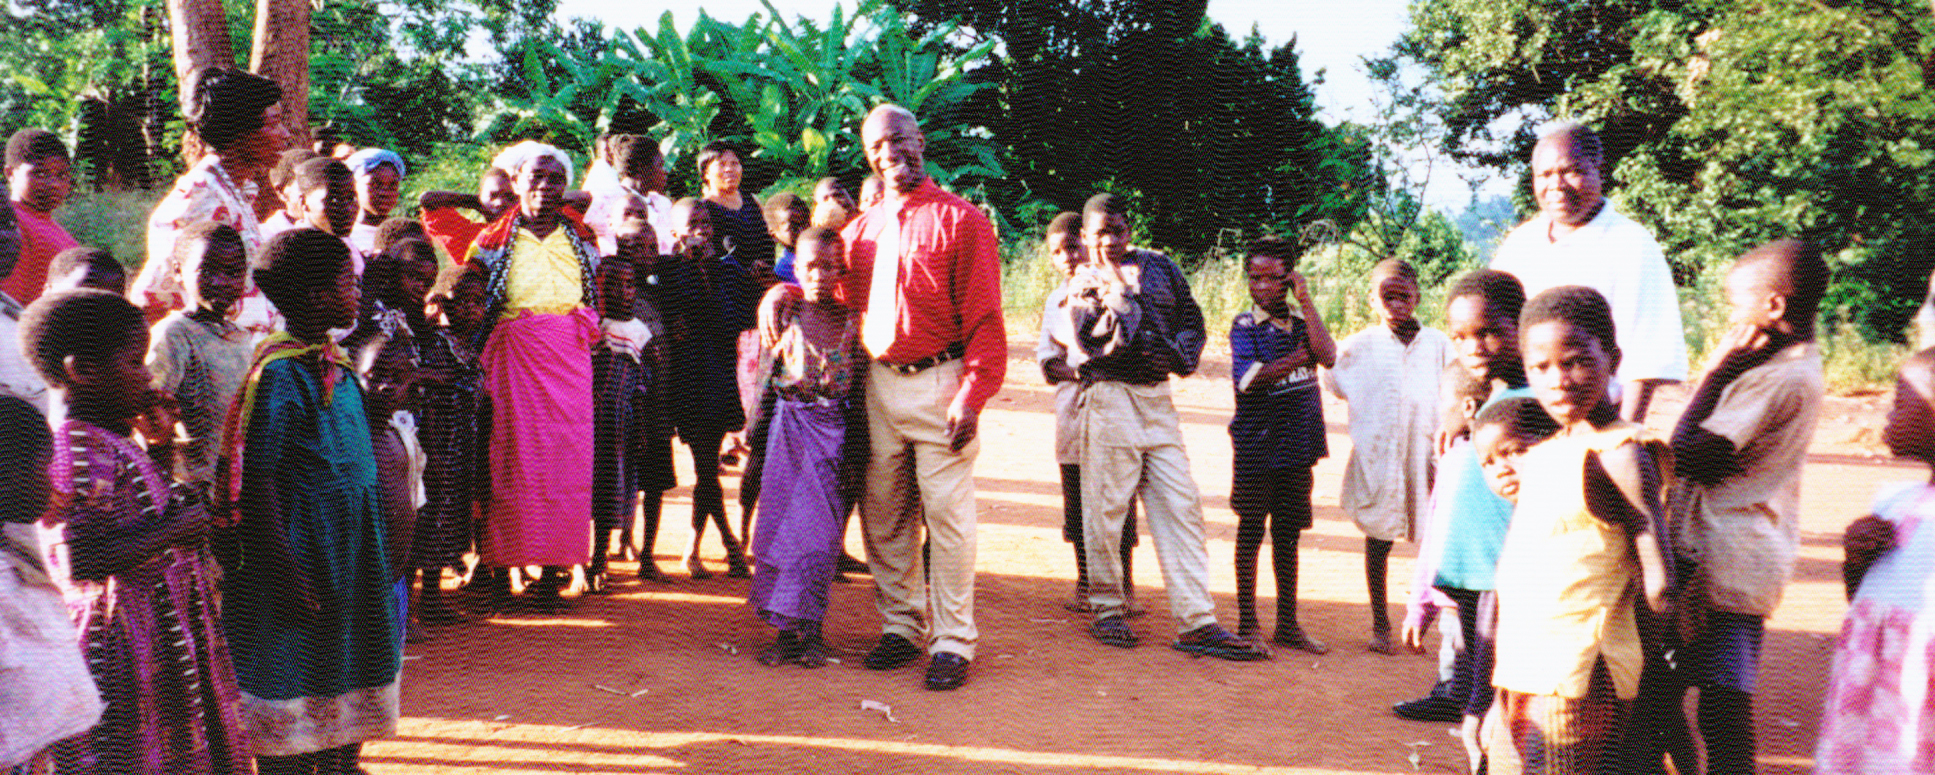 Apostle McFarlane & The Children of BOTR Ghana